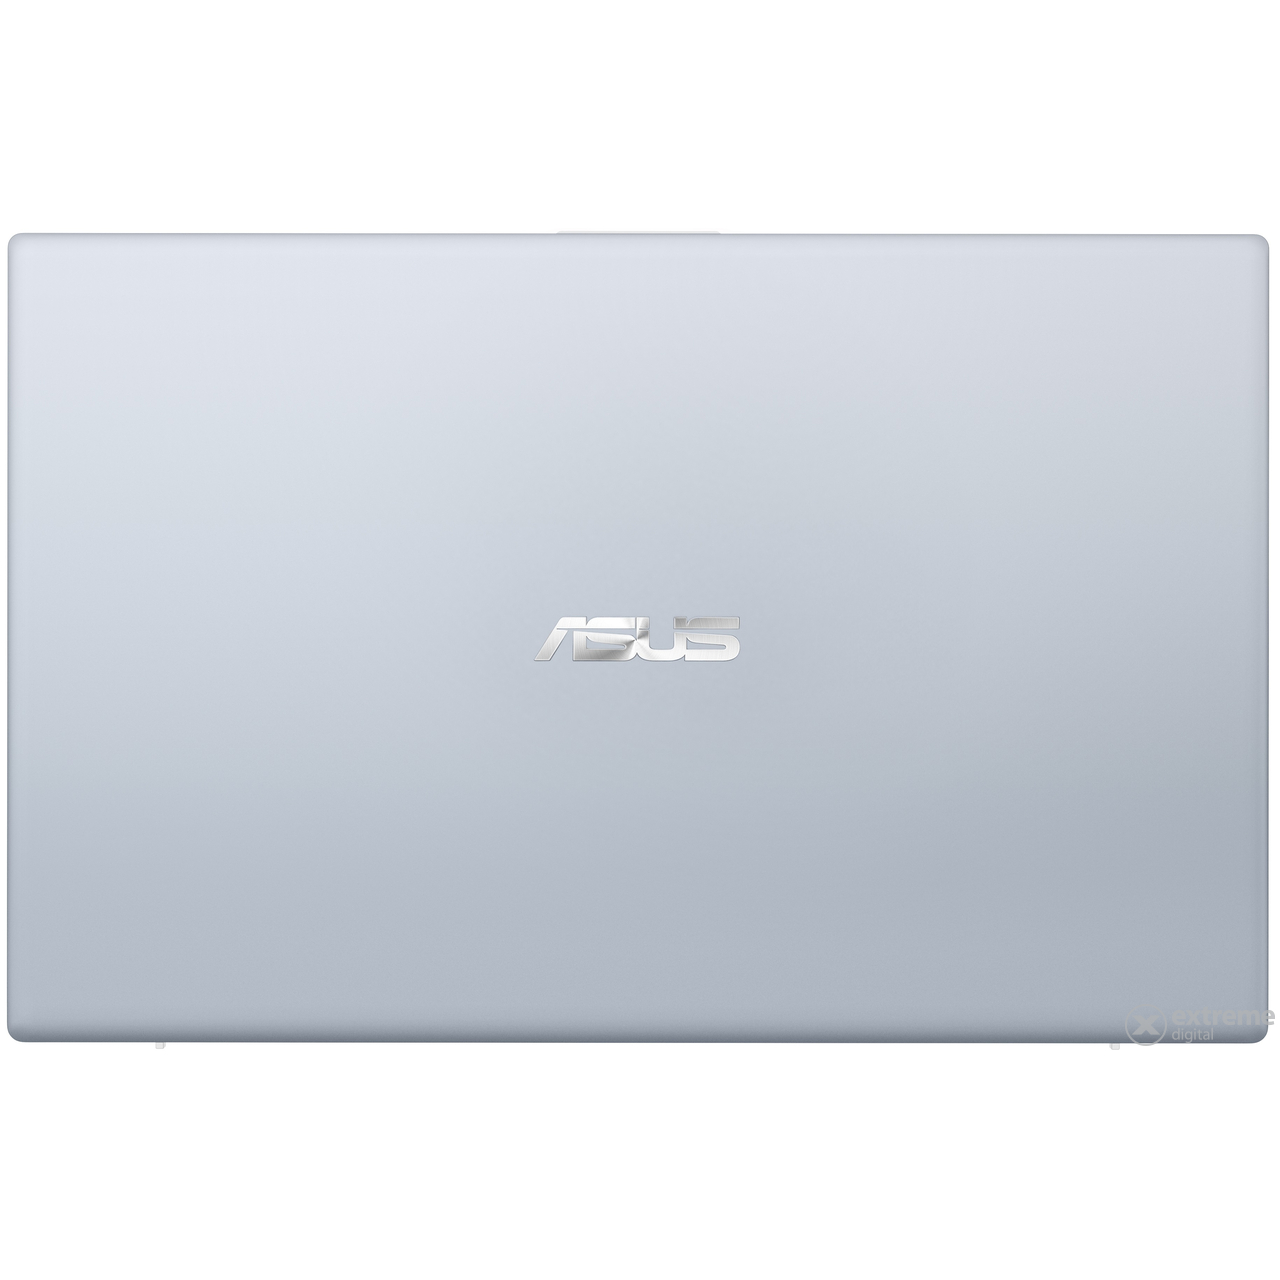 "Asus VivoBook S13 S330FA-EY127T 13,3"" FHD, notebook, Windows 10, ezüst"